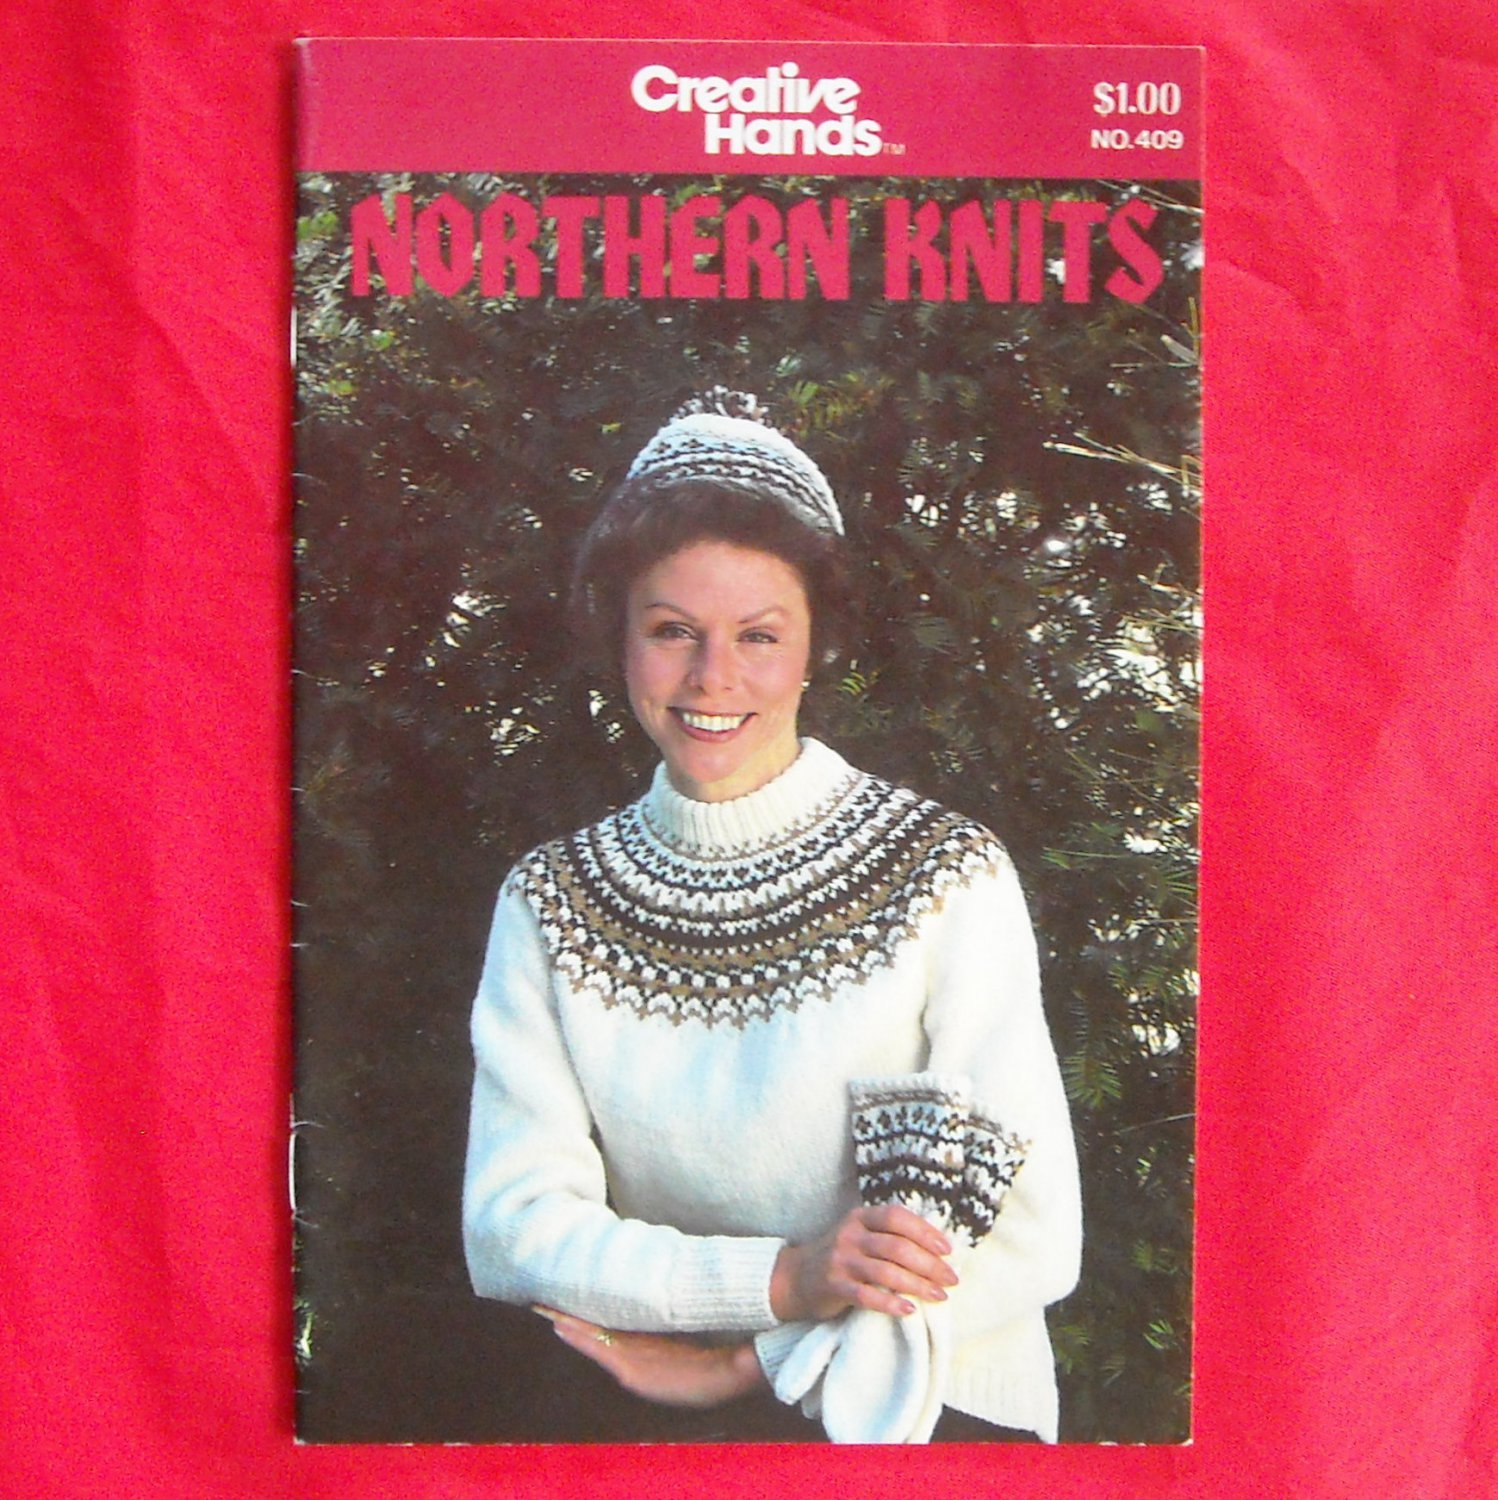 Vintage Creative Hands Northern knits no. 409 from 1981